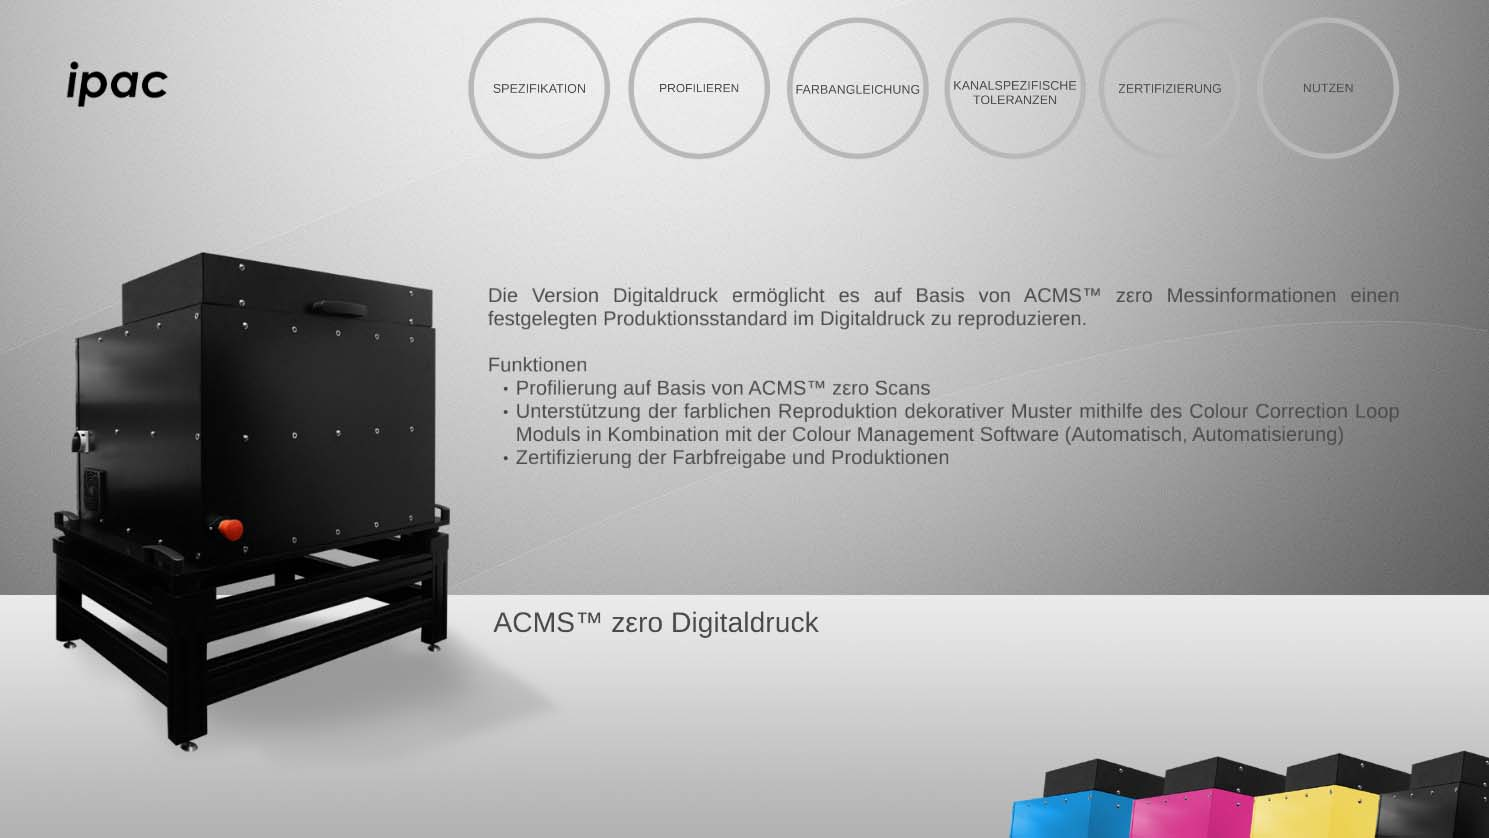 ACMS zero Digitaldruck